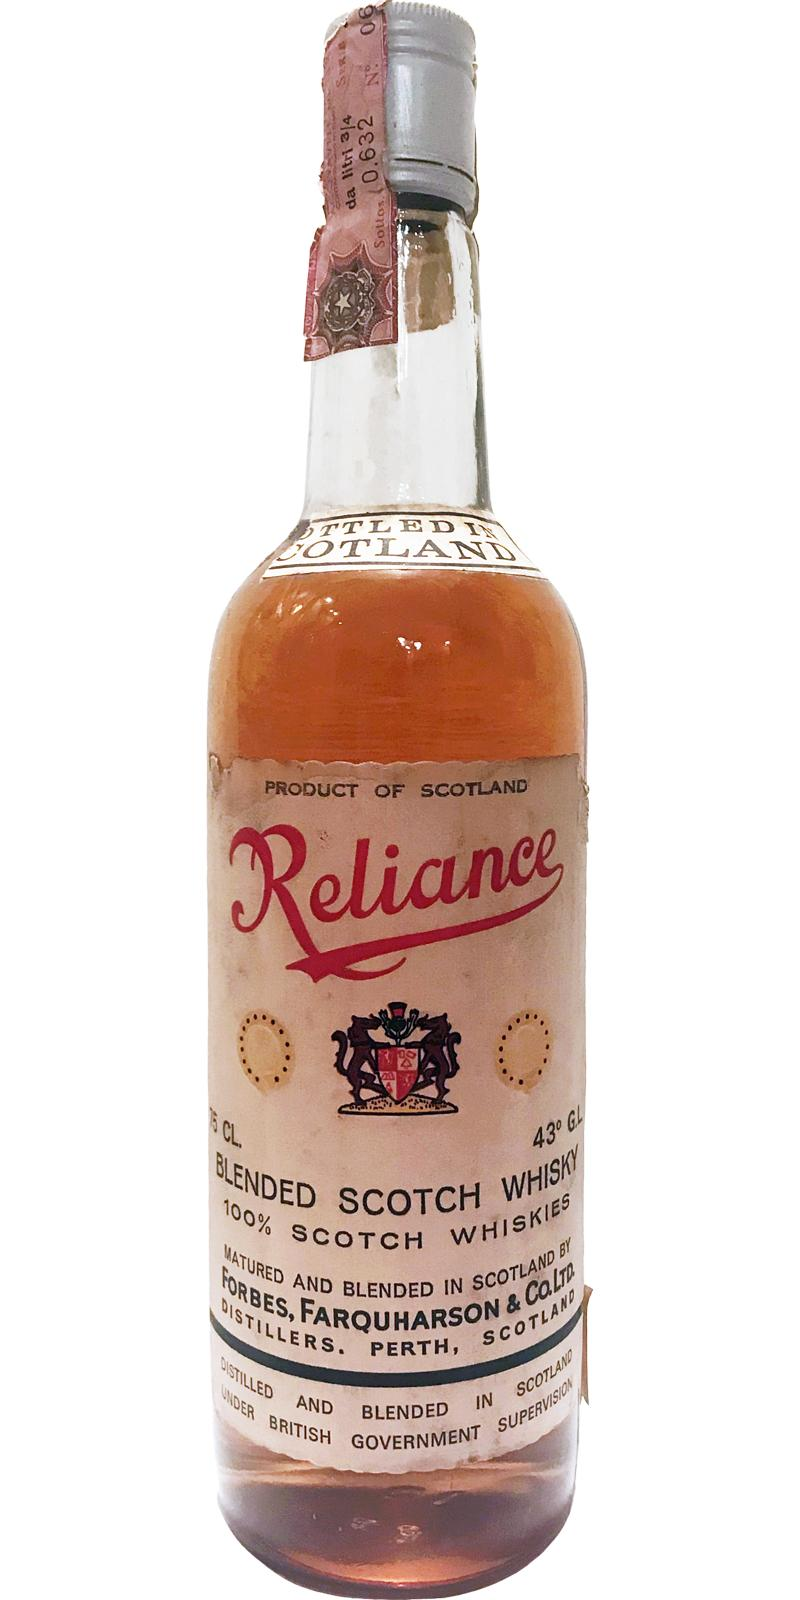 Reliance Blended Scotch Whisky